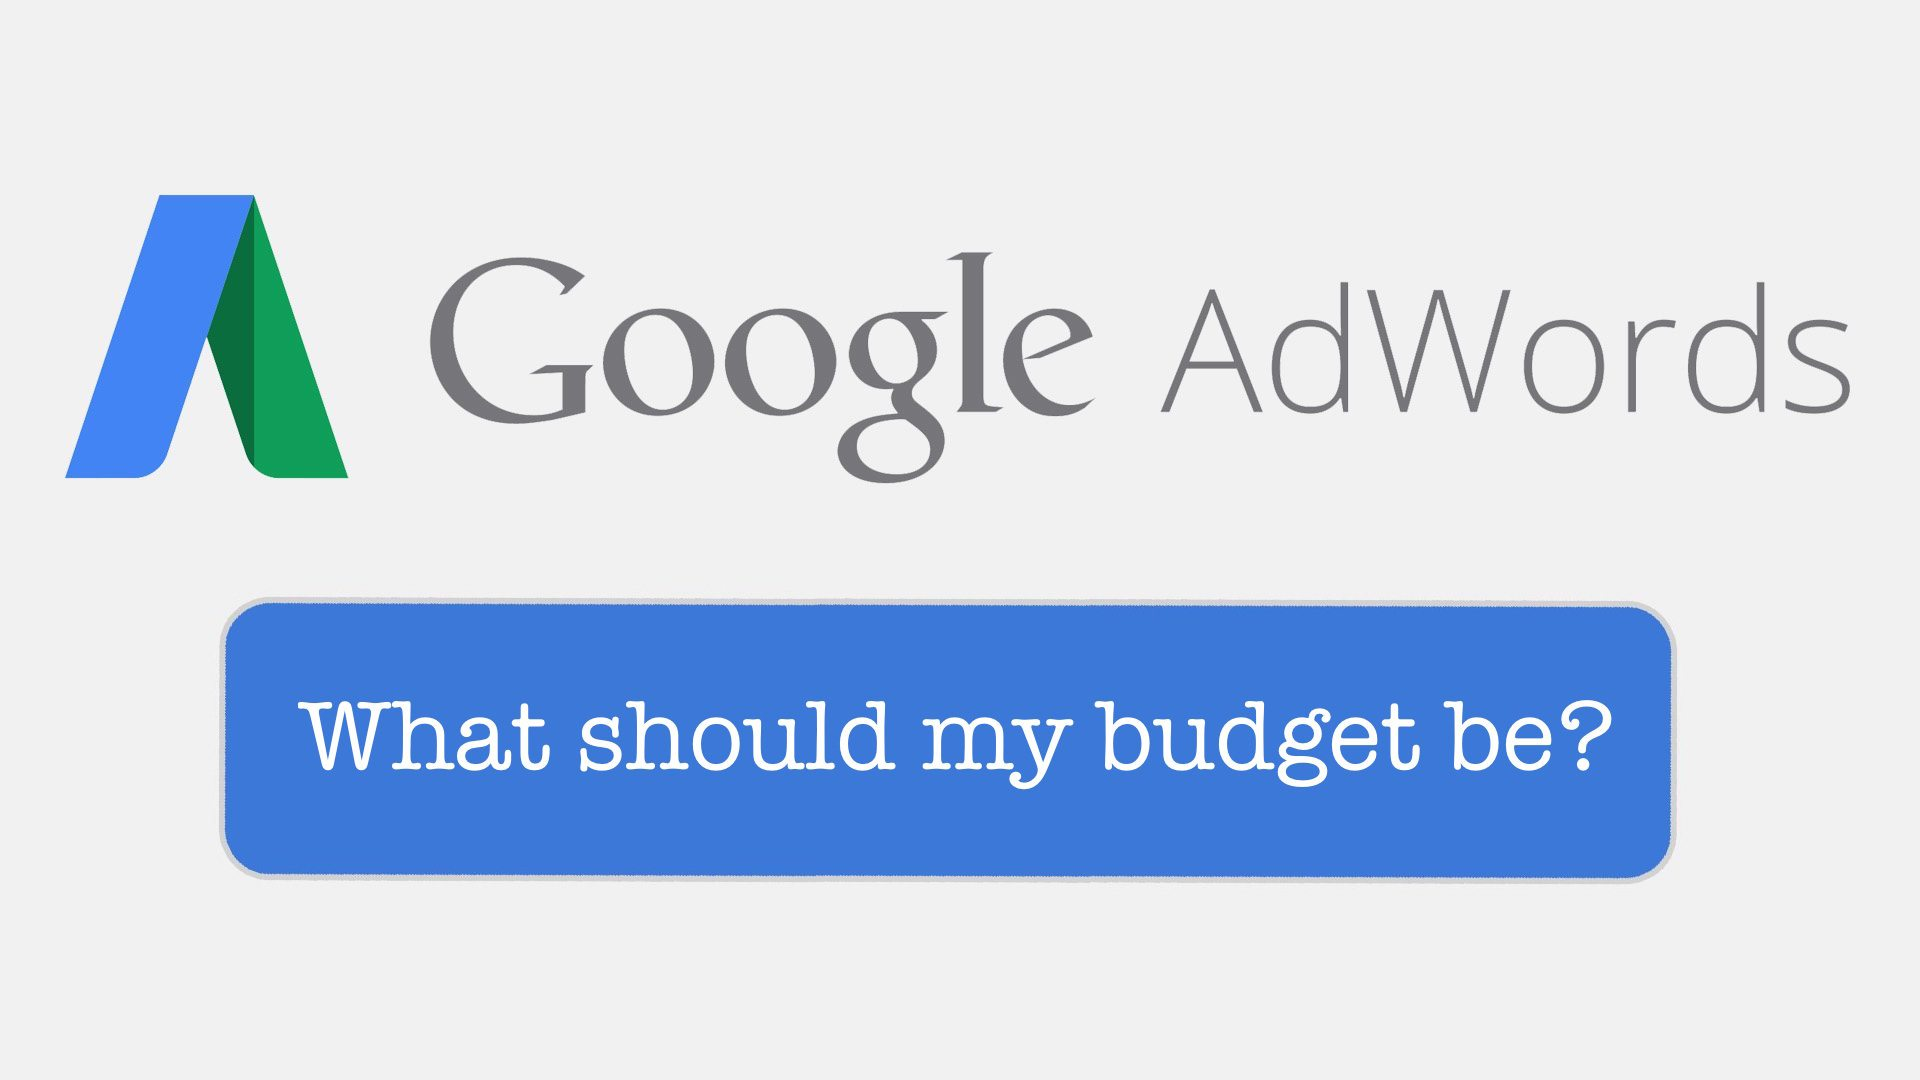 What Should My Budget be for Adwords